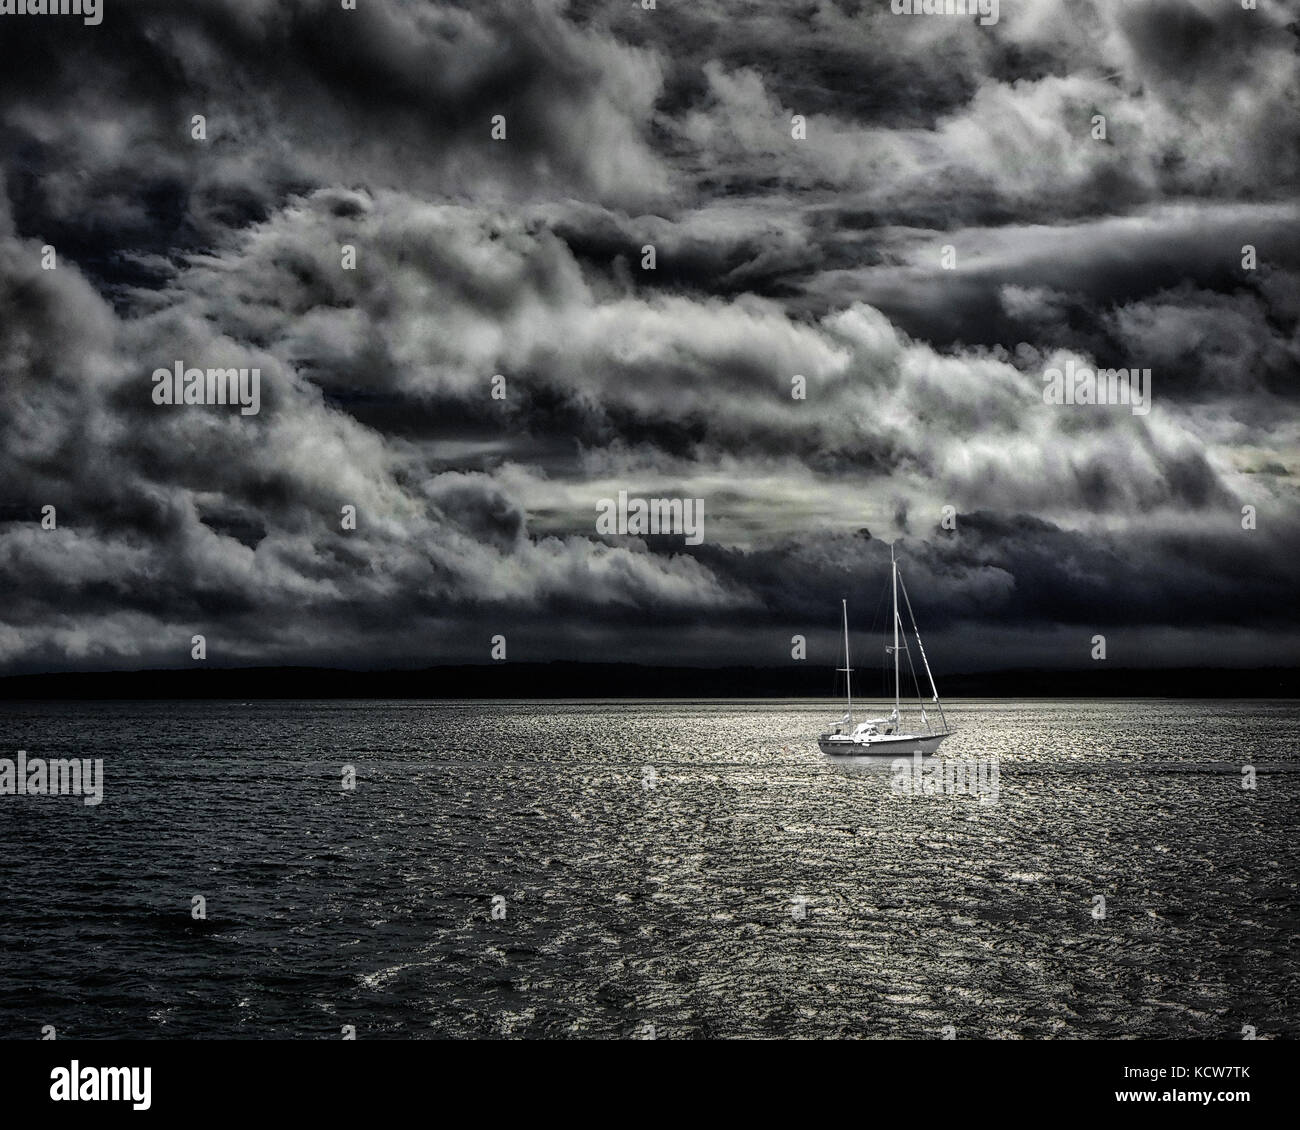 GB - DEVON (Torbay): Dramatic Seascape - Stock Image